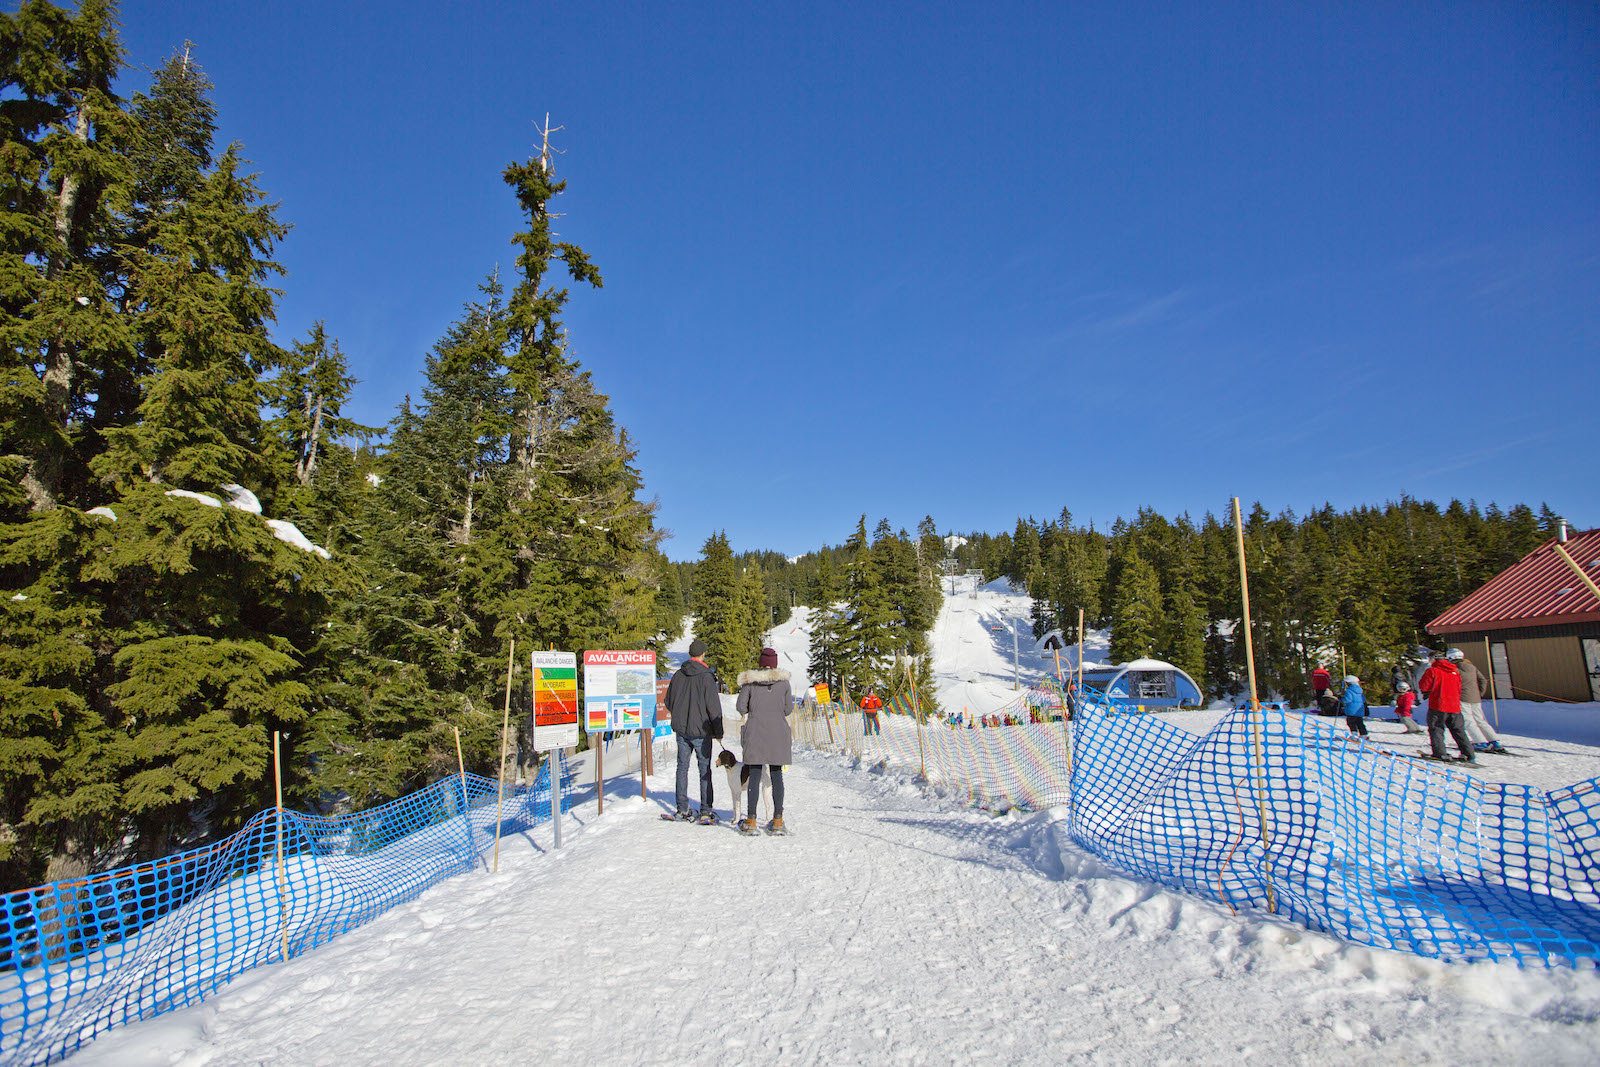 Image of visitors walking around the property at Mt. Seymour in Canada